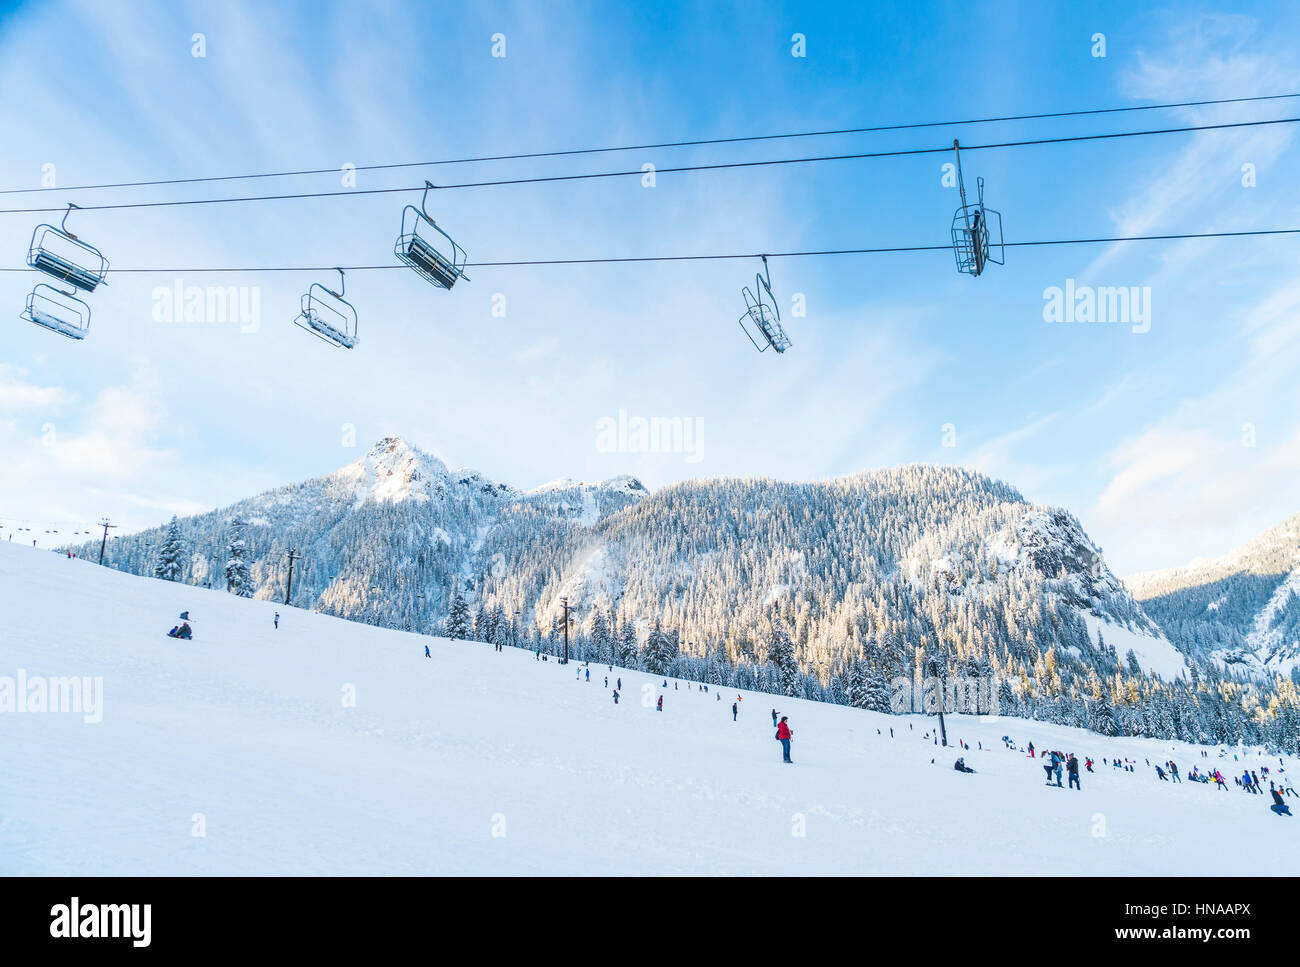 beautiful ski lift over snow mountain in ski resort with blue sky background. - Stock Image